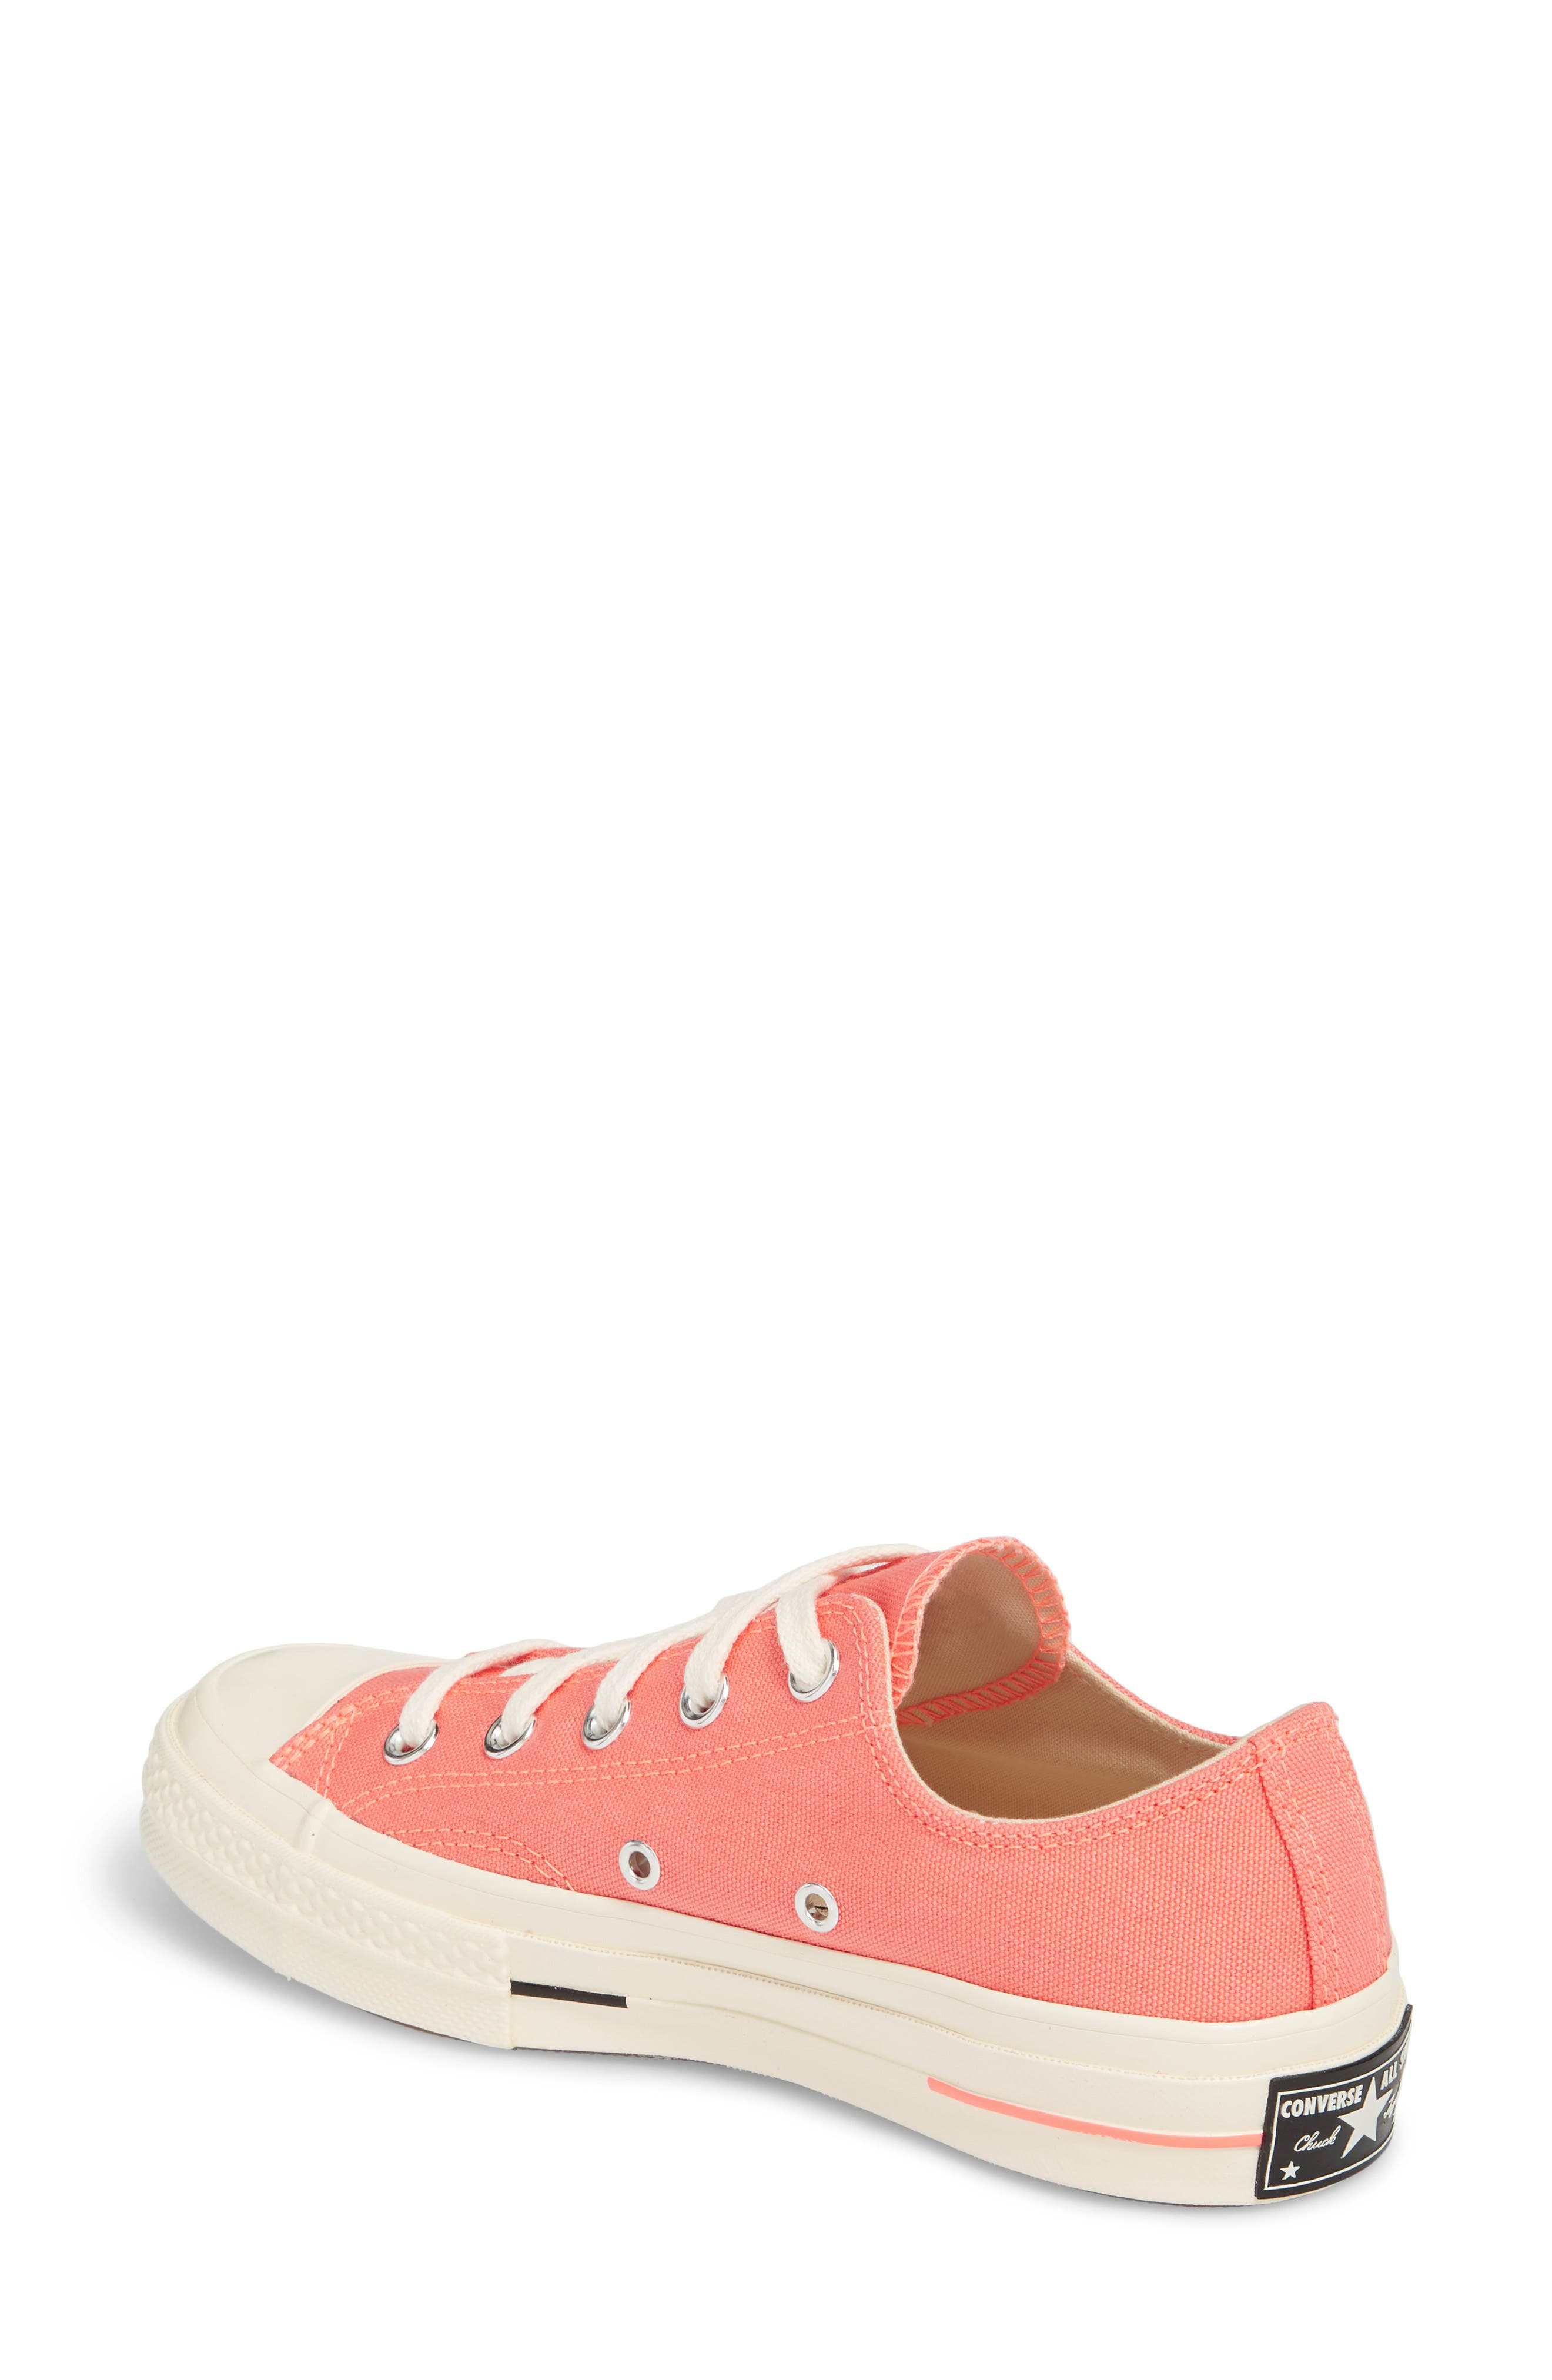 Alternate Image 2  - Converse Chuck Taylor® All Star® '70s Brights Low Top Sneaker (Women)